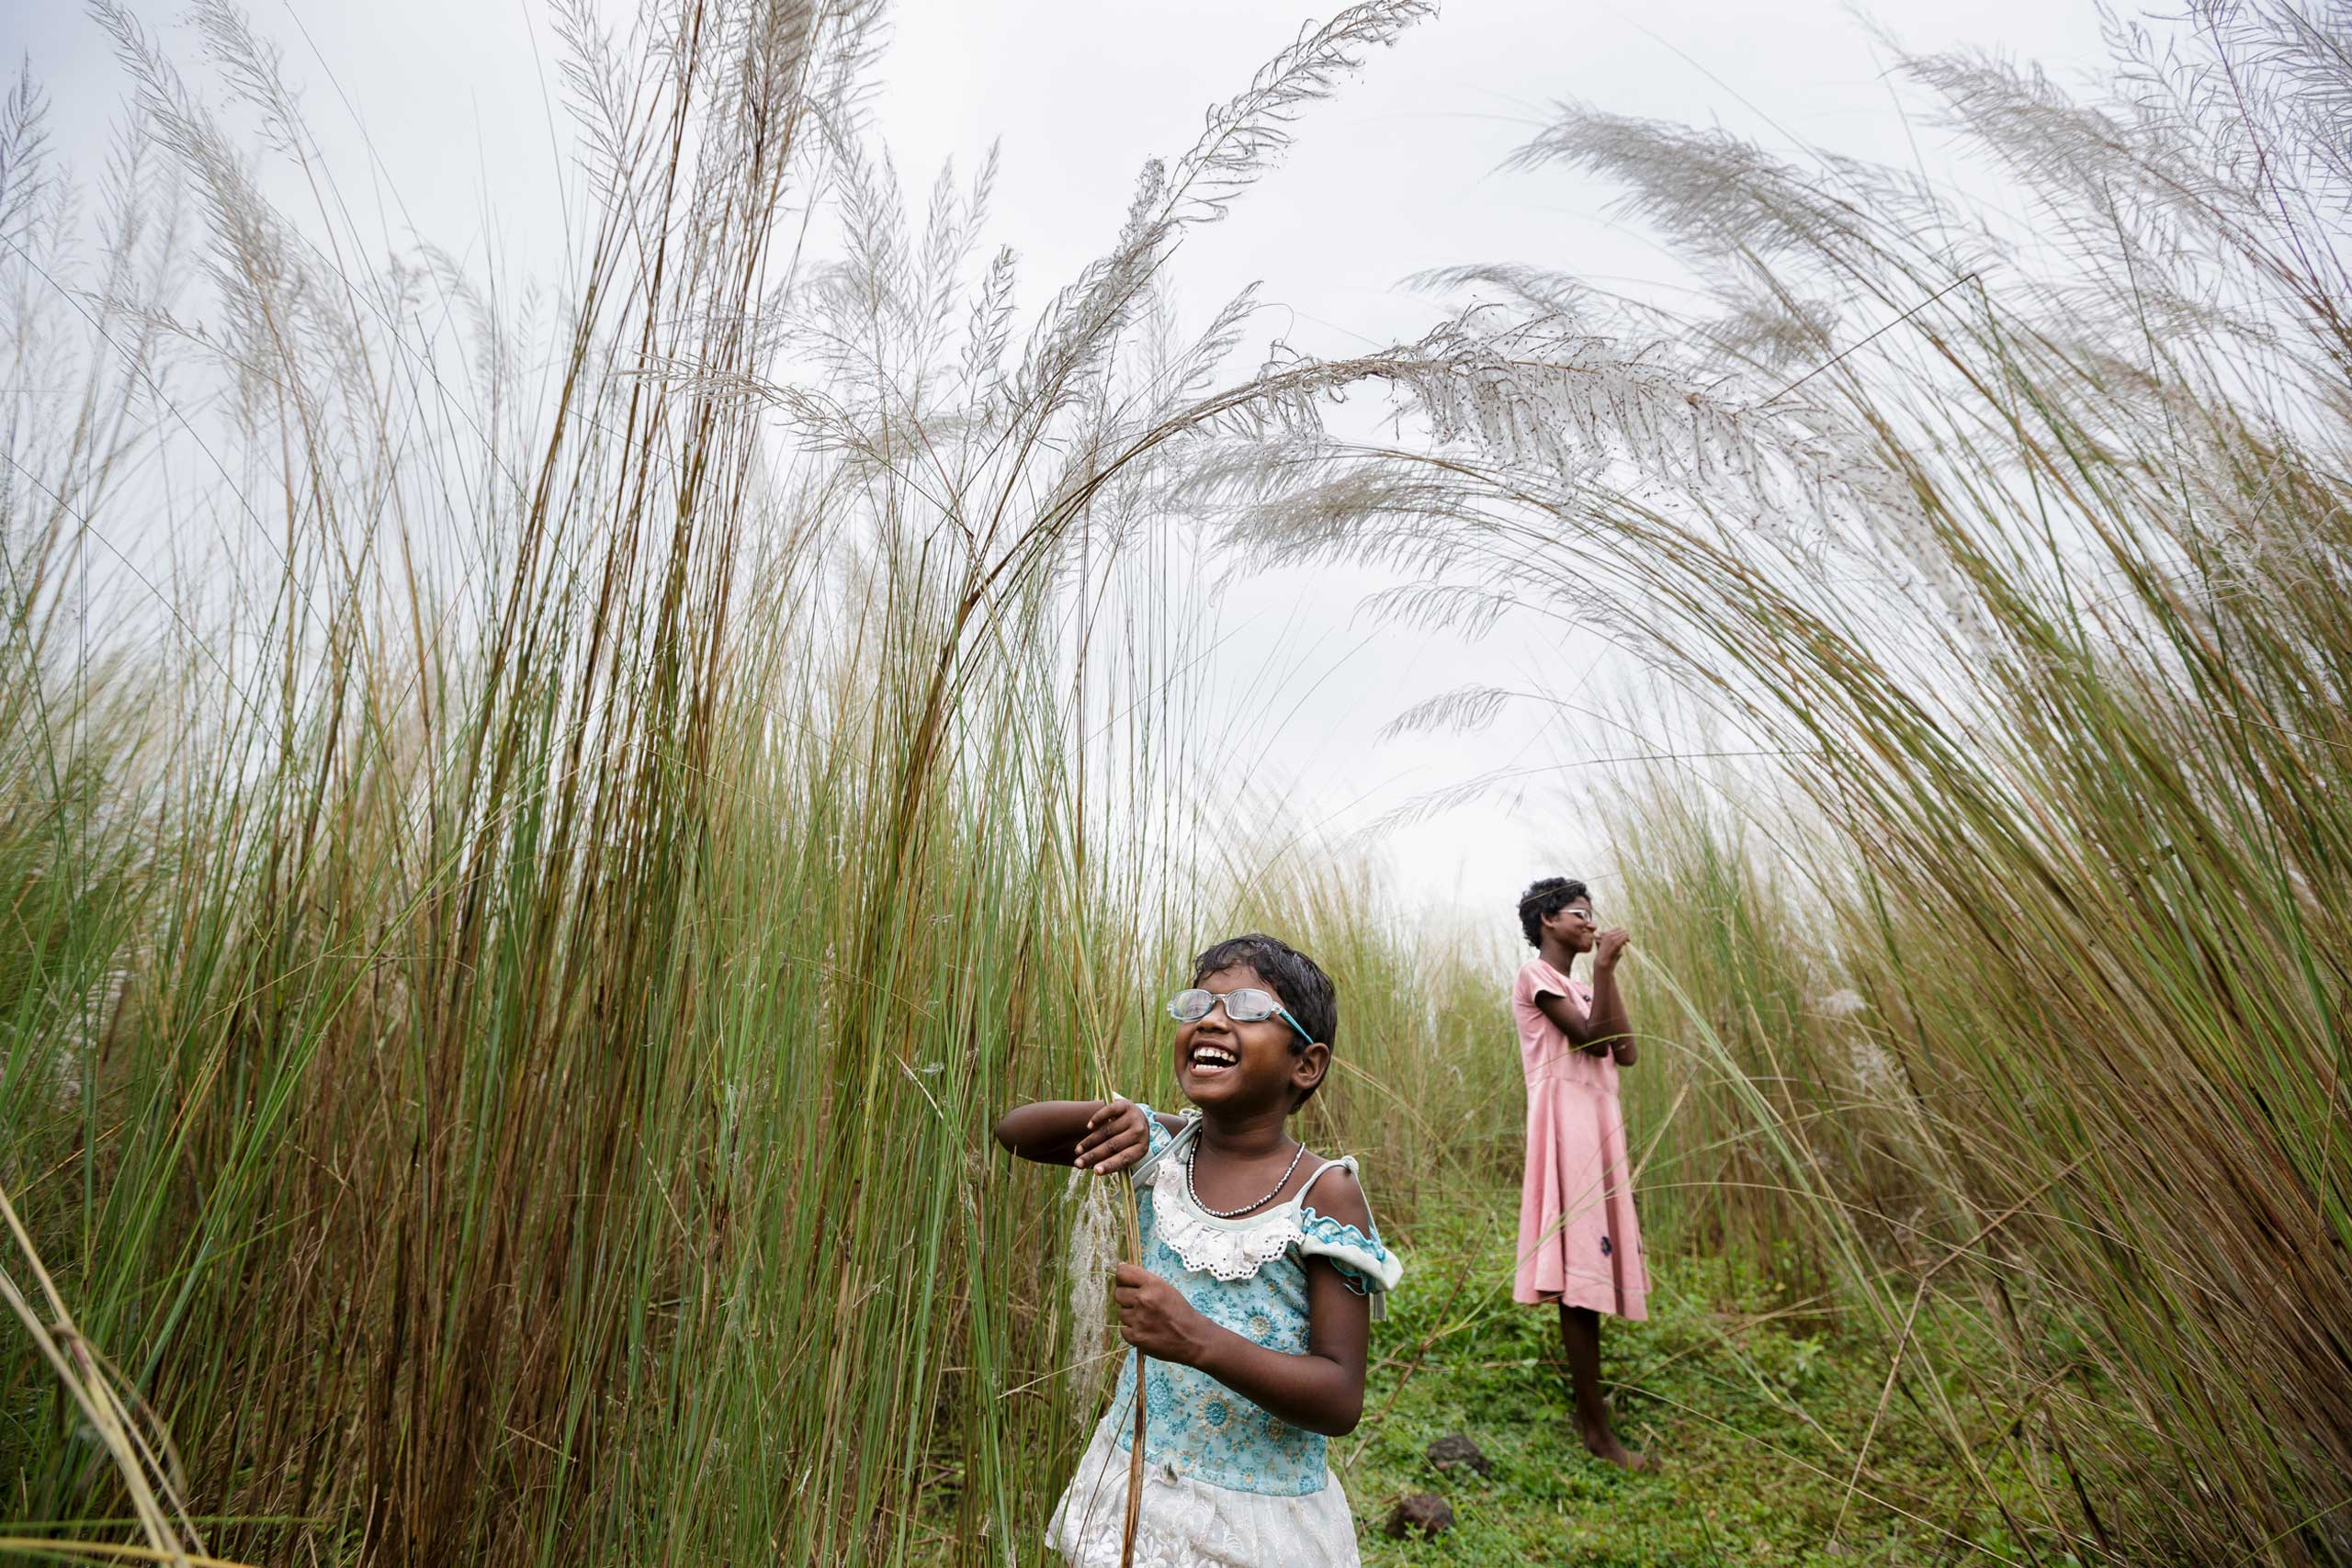 Nominated in the Contemporary Issues category. Brent Stirton's work on congenital cataract blindness in South Africa.